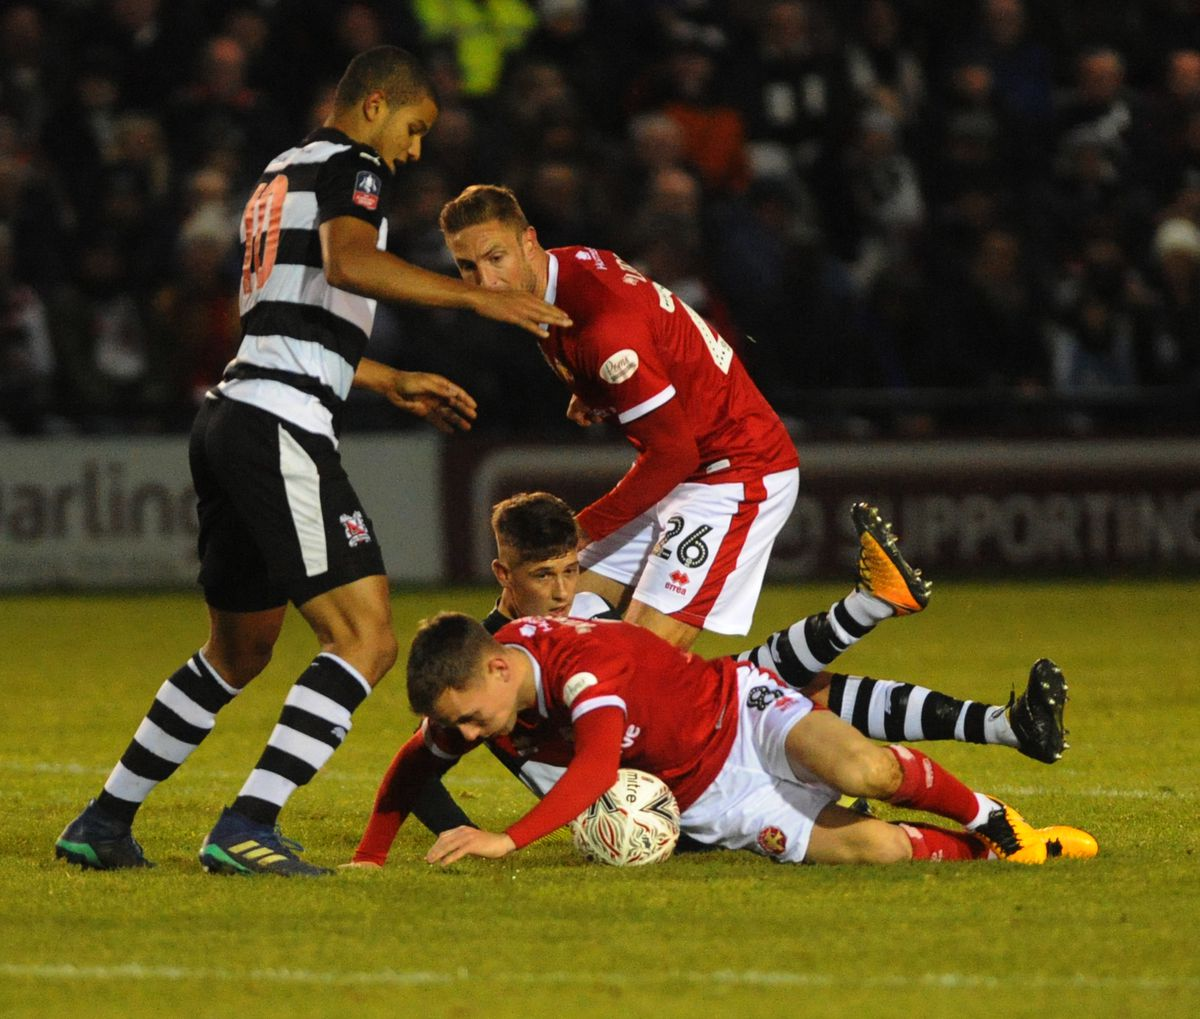 Liam Kinsella battles for the ball..